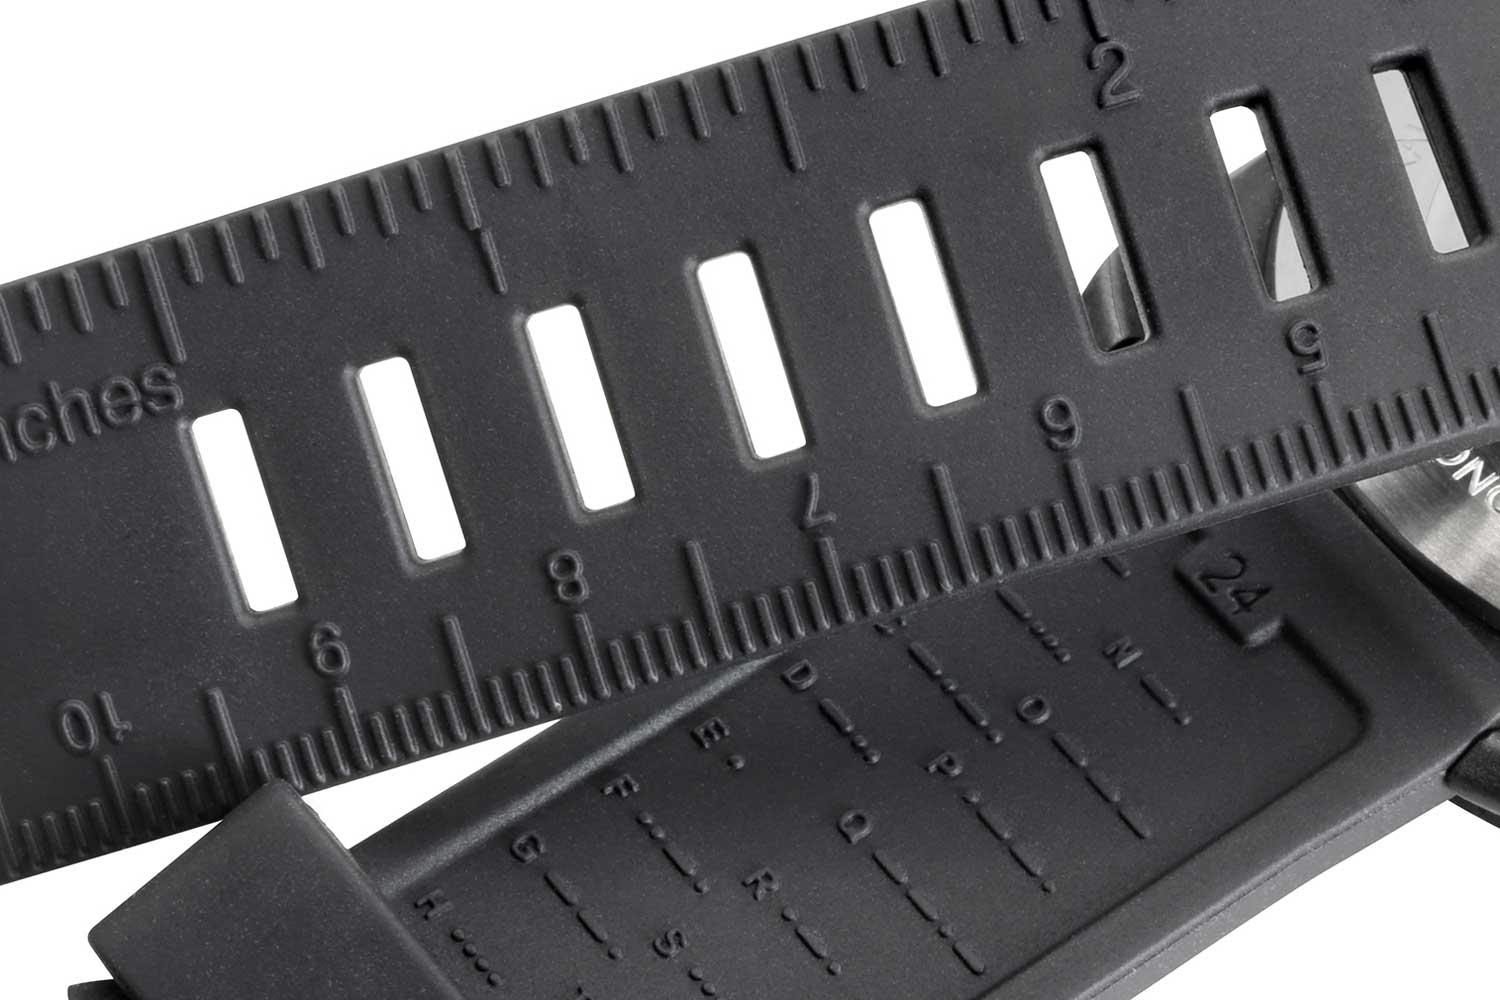 The rubber strap for the Survival series features a ruler as well as a Morse code decoder, useful for emergencies.